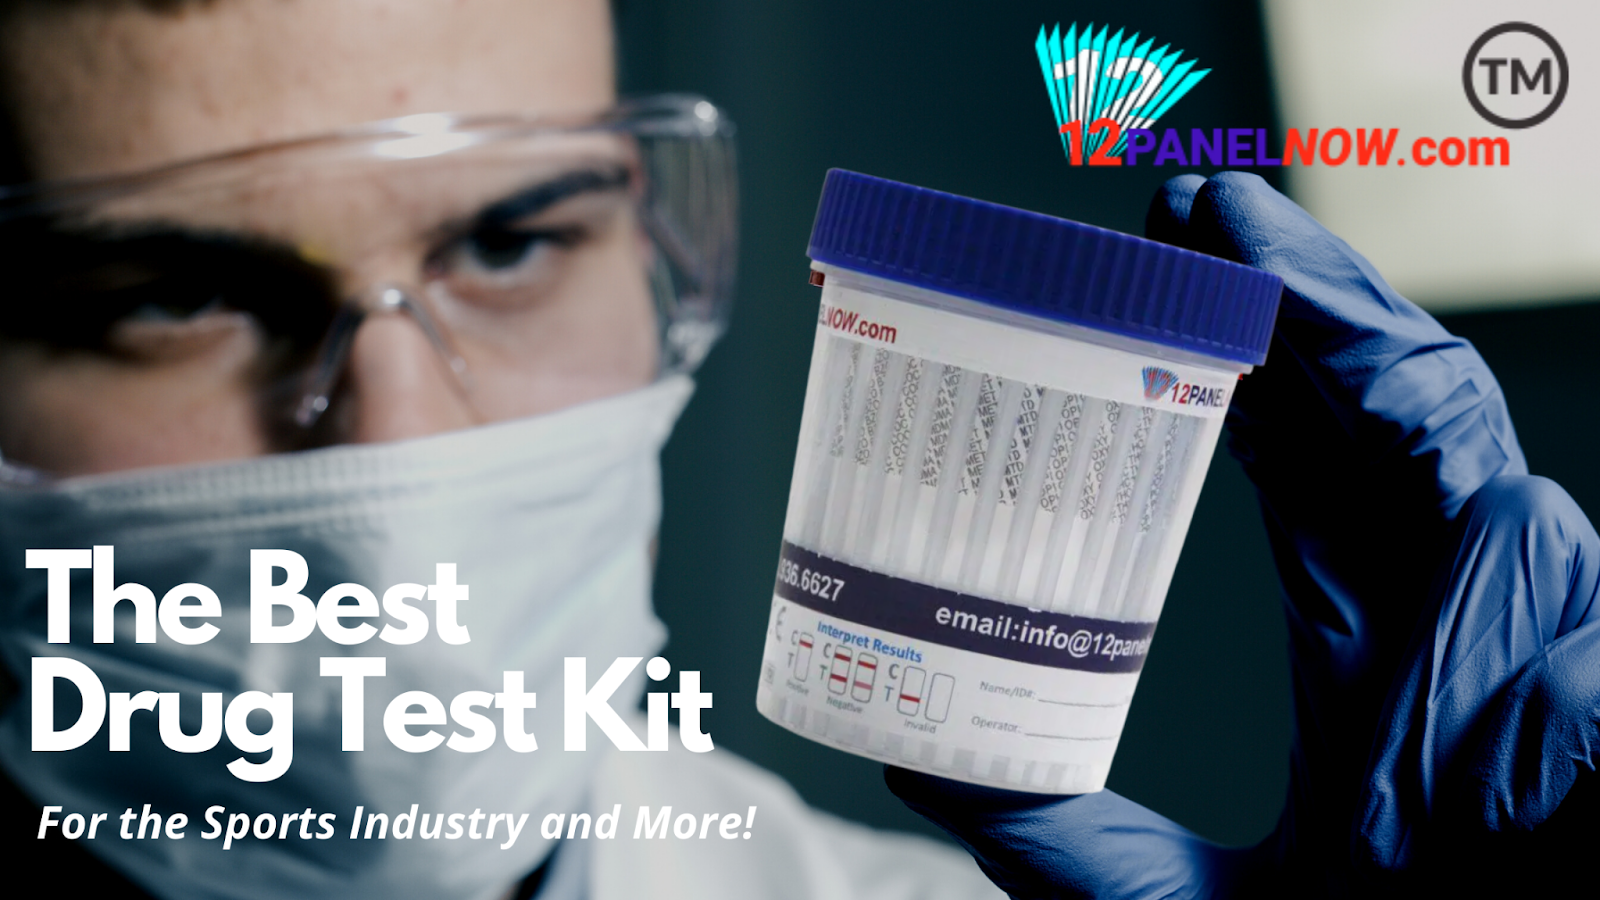 At What Level is Sports Drug Testing Done?